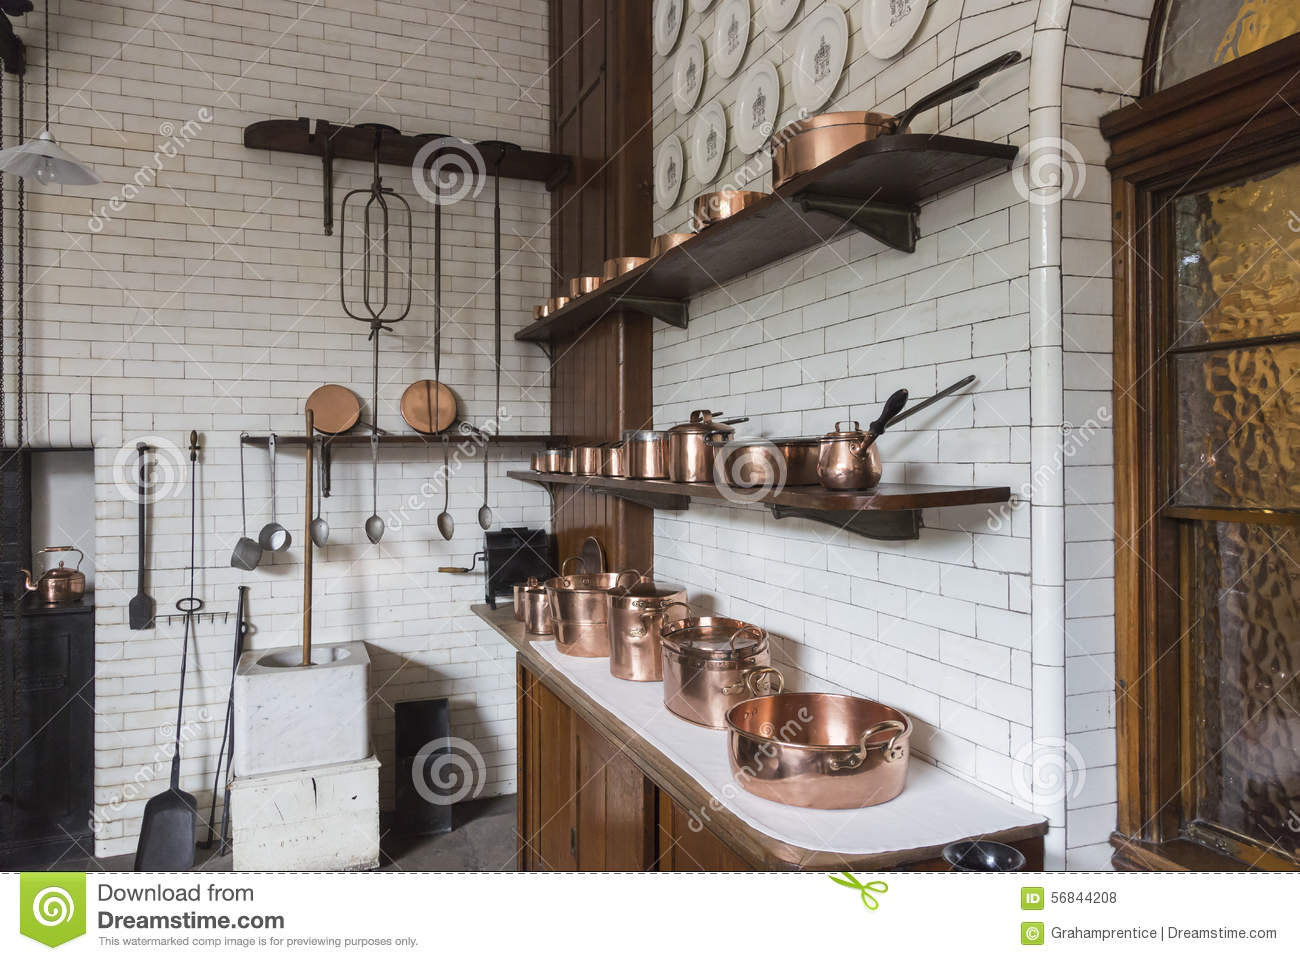 Old Fashioned Kitchen Copper Pots Pans Saucepans And Utensils In An Old Fashioned